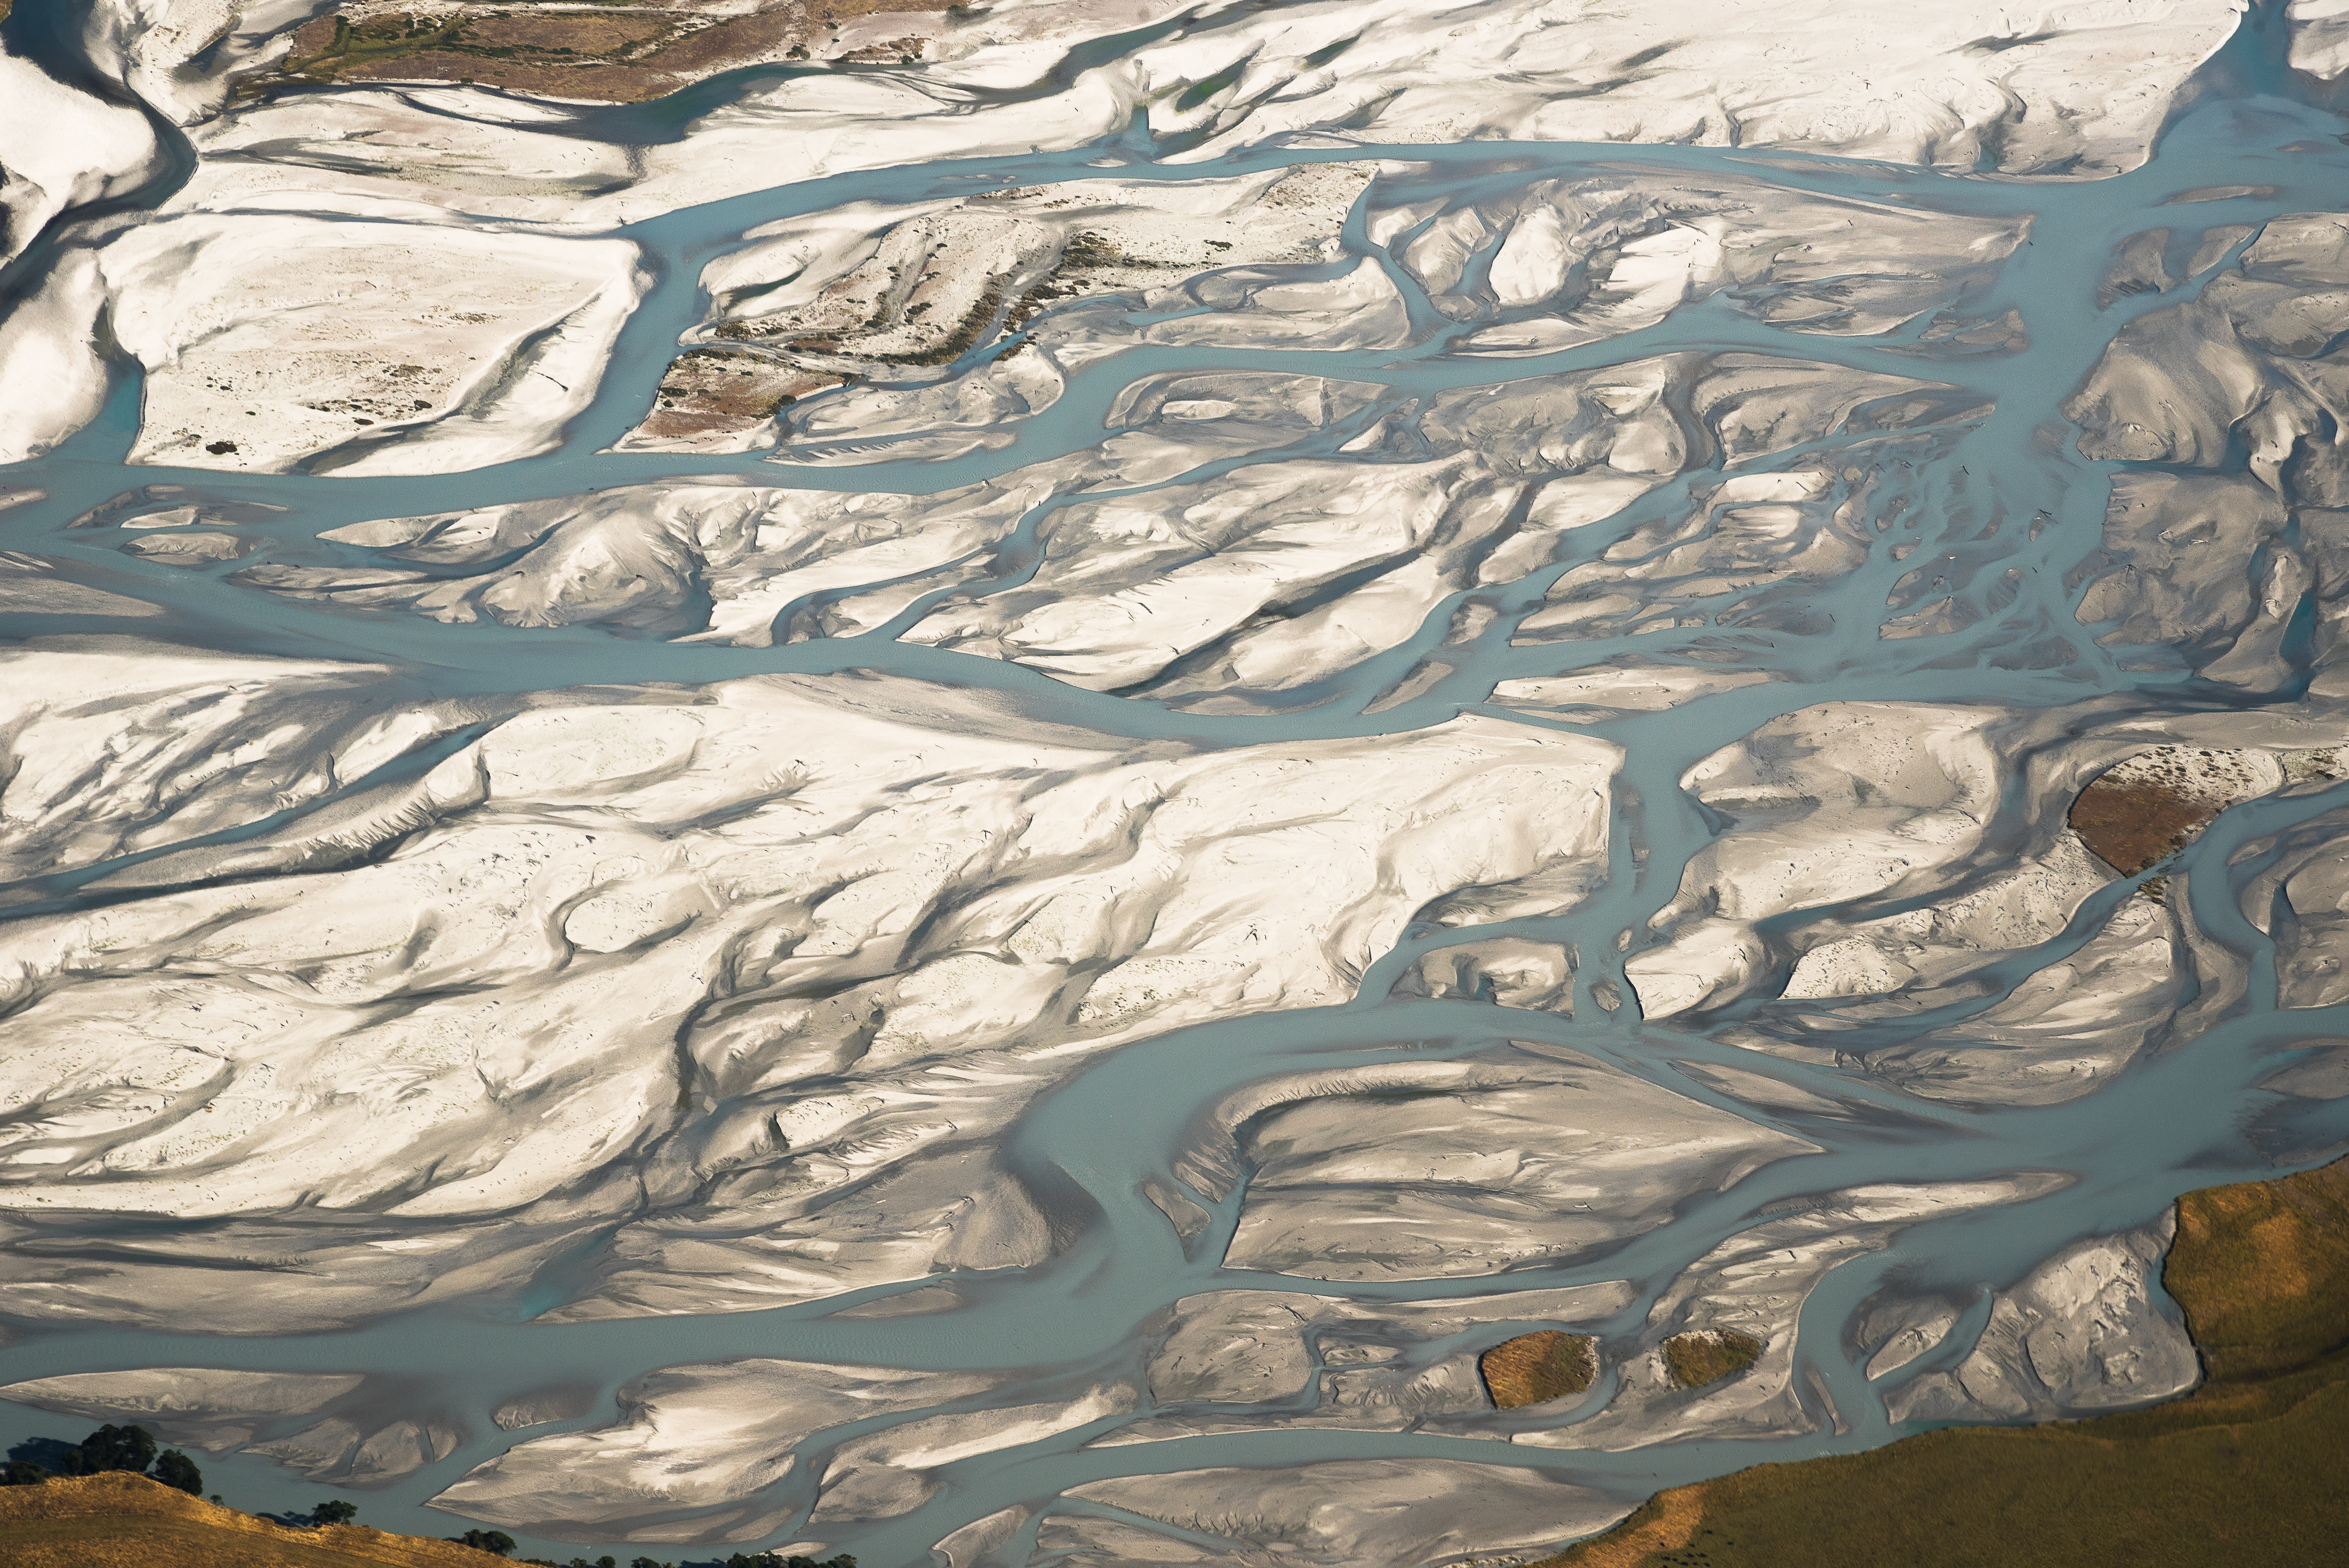 aerial photography of icy land